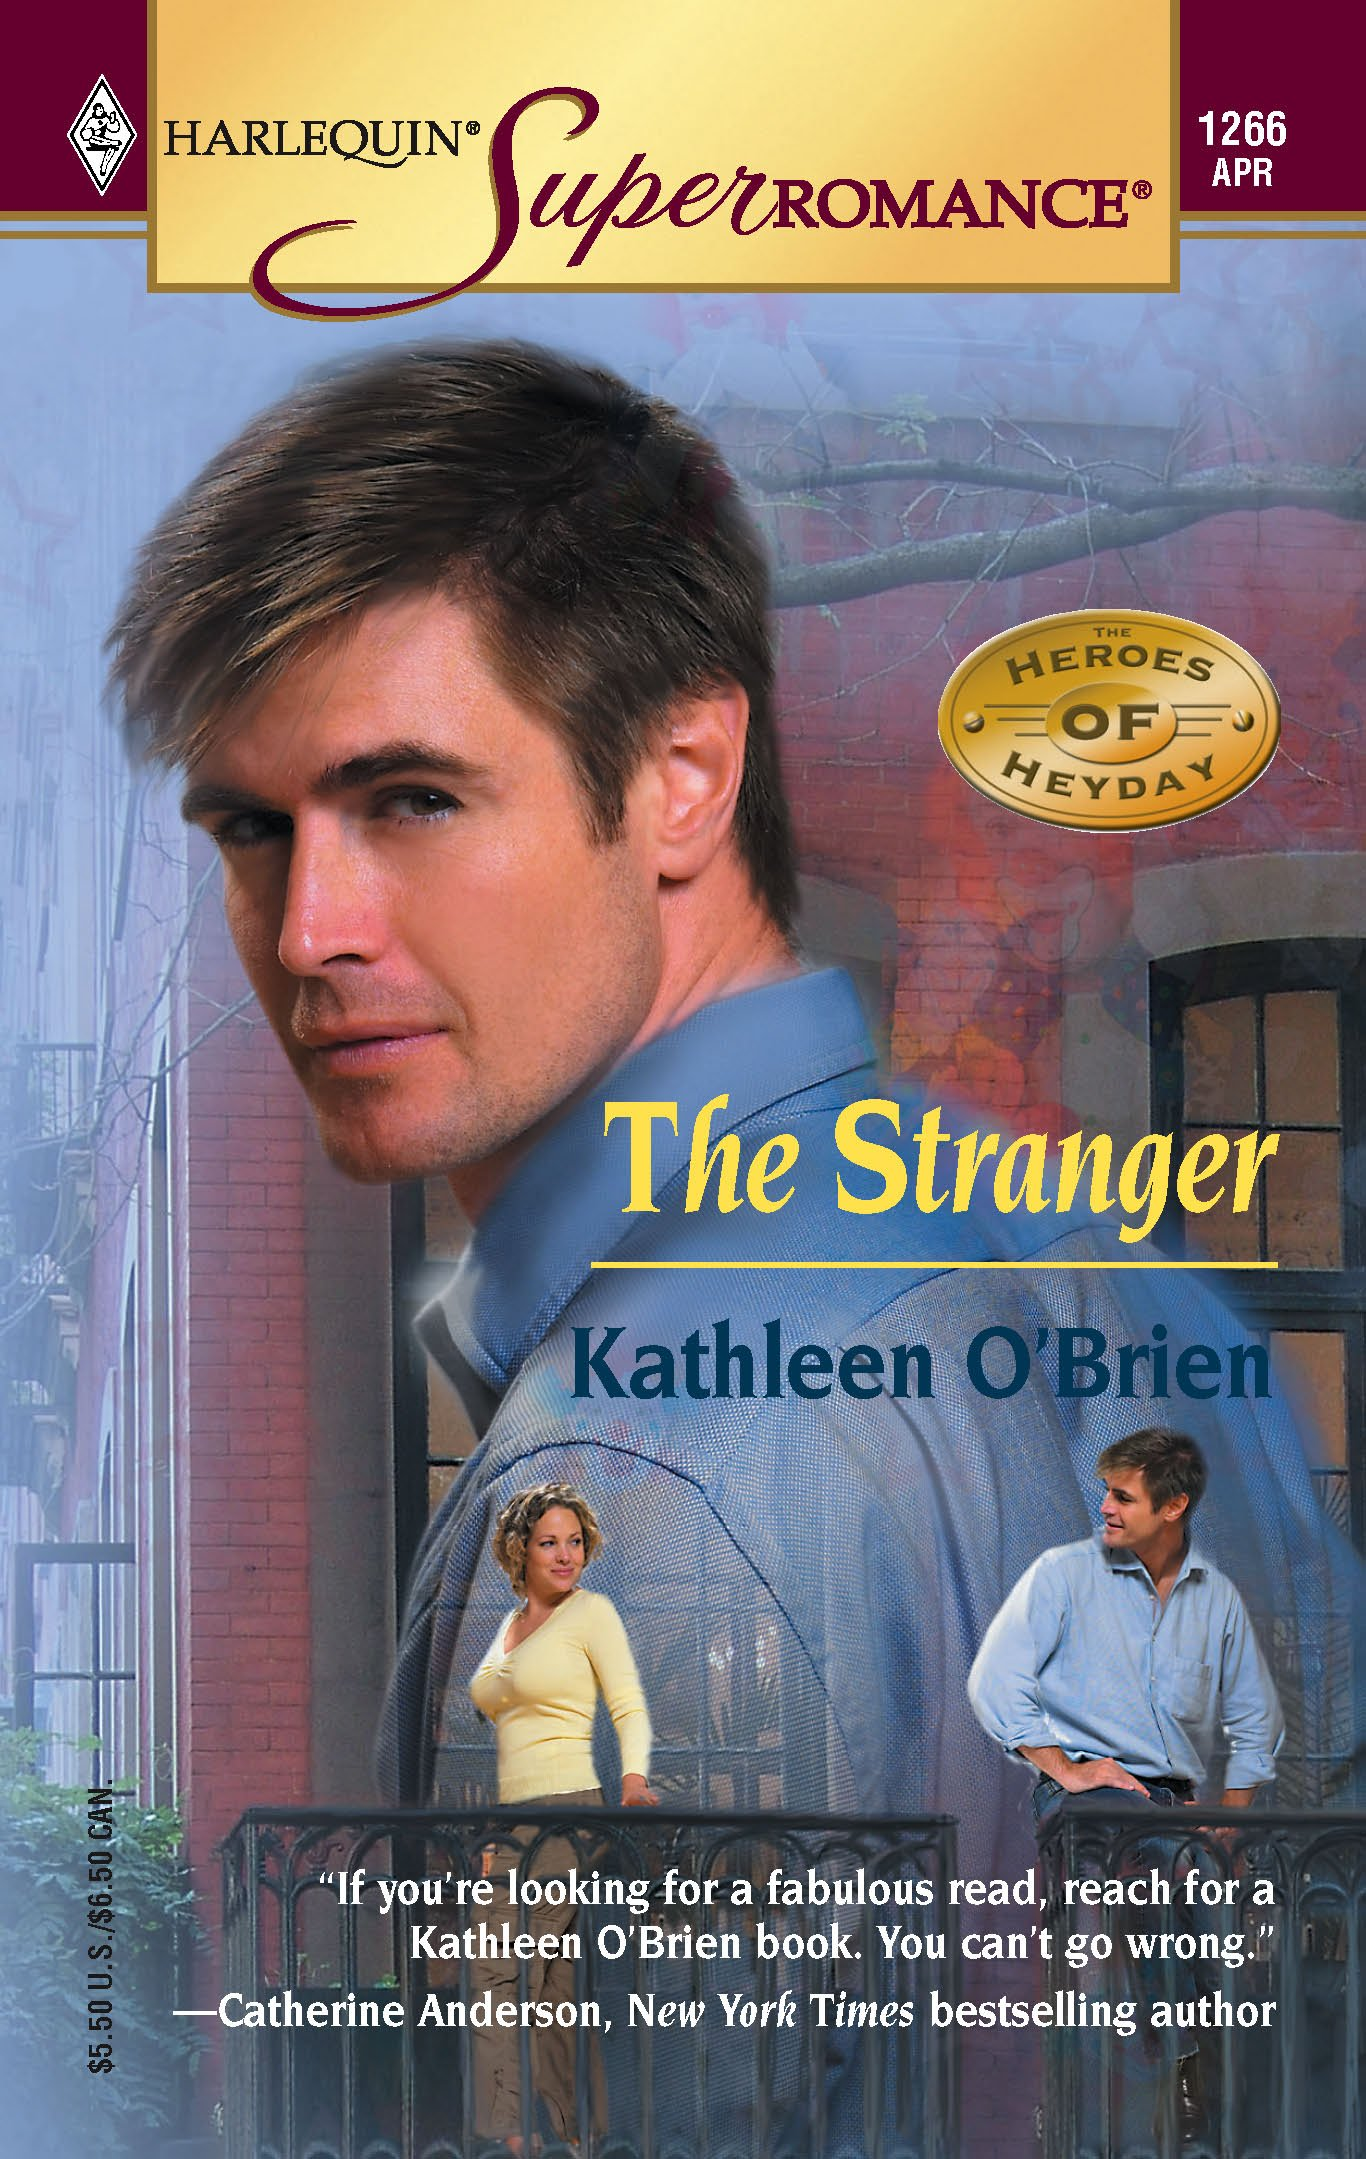 Download The Stranger: The Heroes of Heyday (Harlequin Superromance No. 1266) pdf